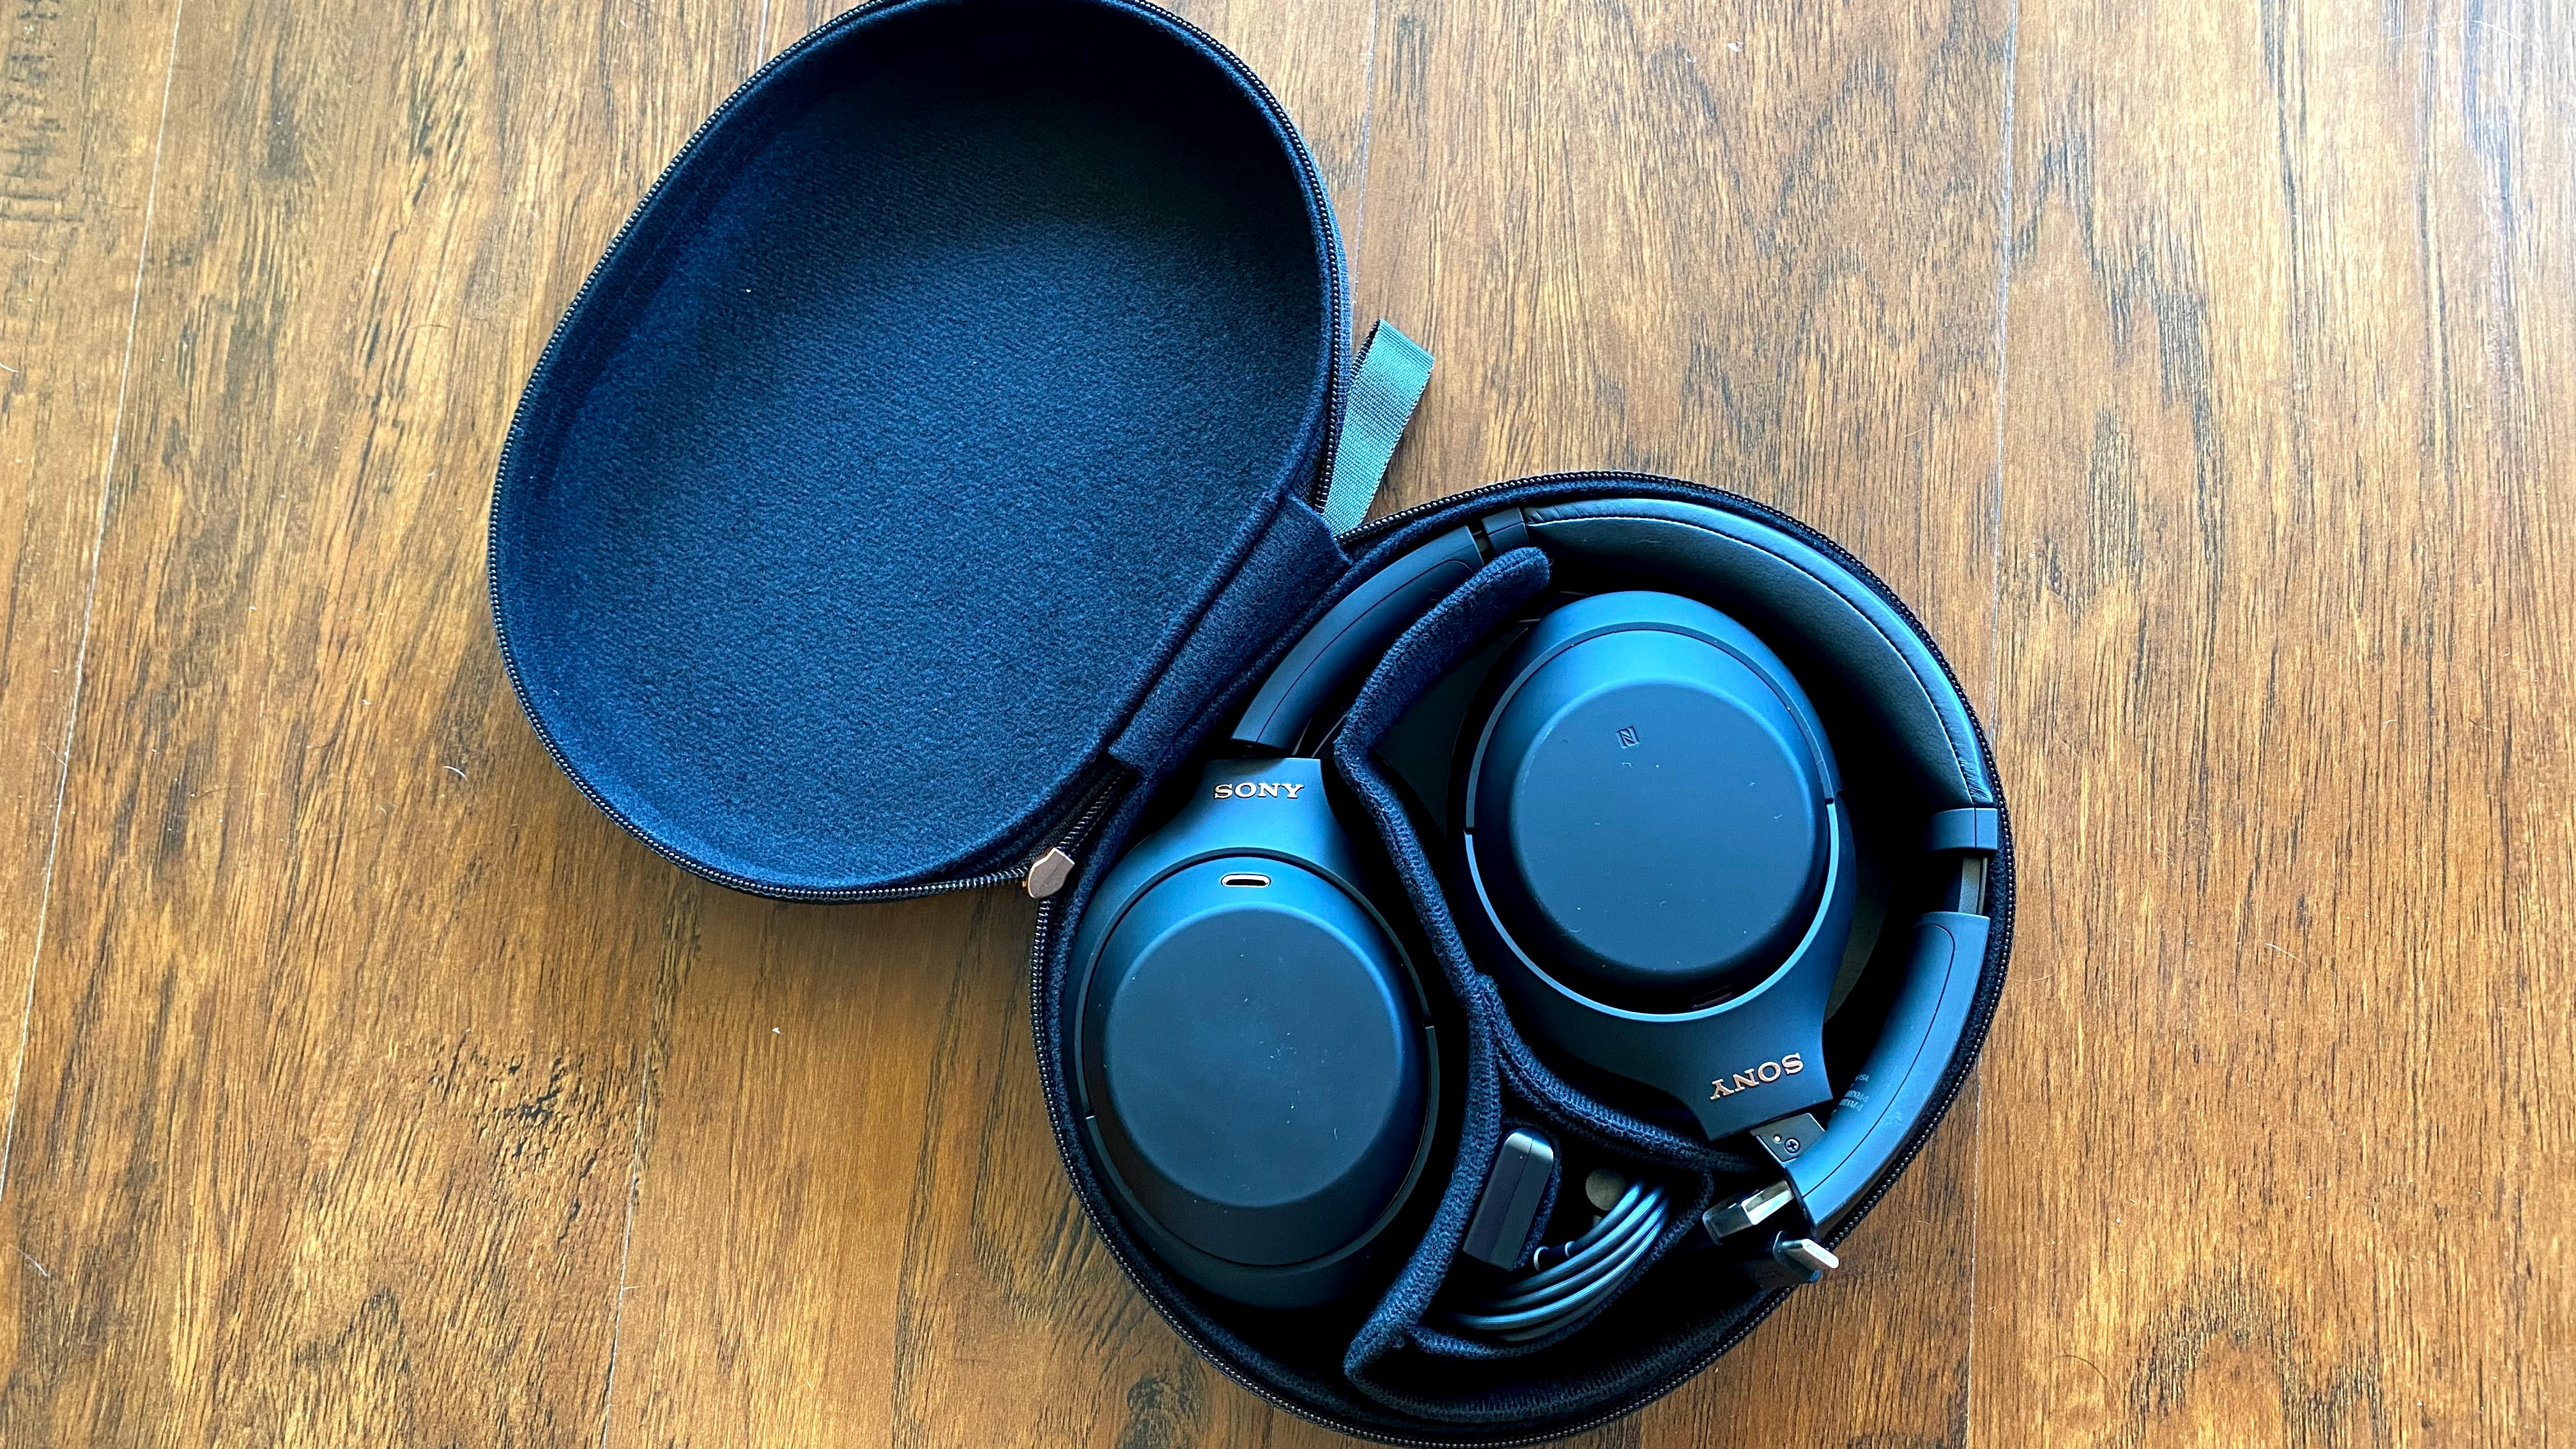 Sony WH-1000XM4 review